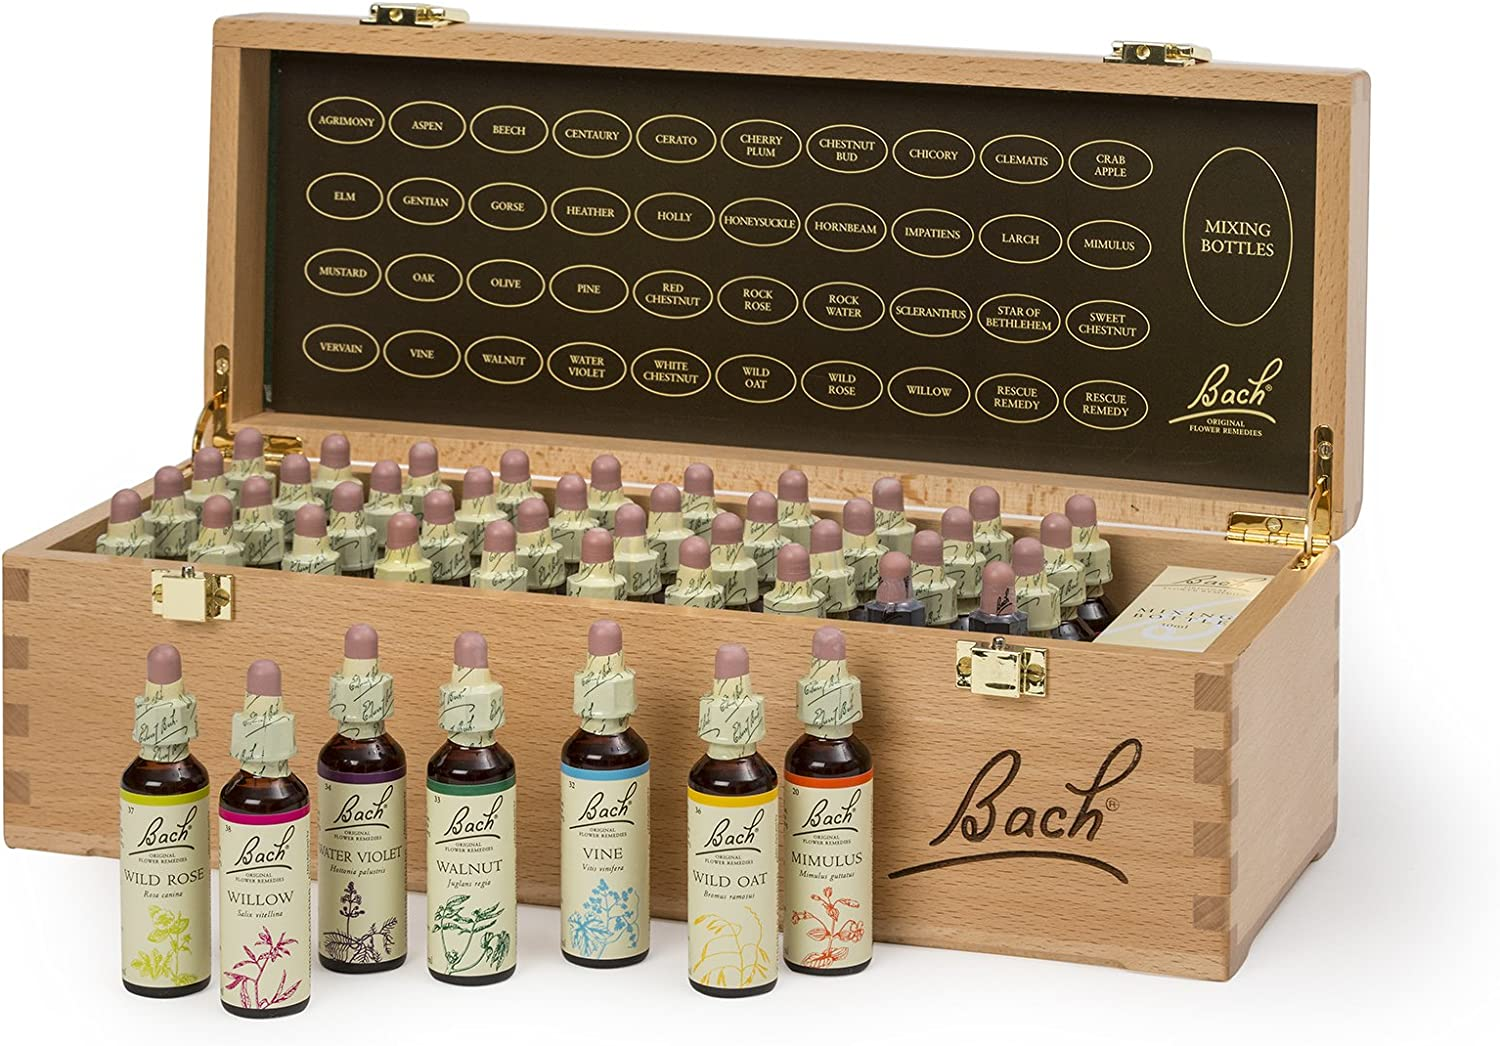 (Bach Professional Set Box) - Bach Original Flower Remedies Professional Set Box